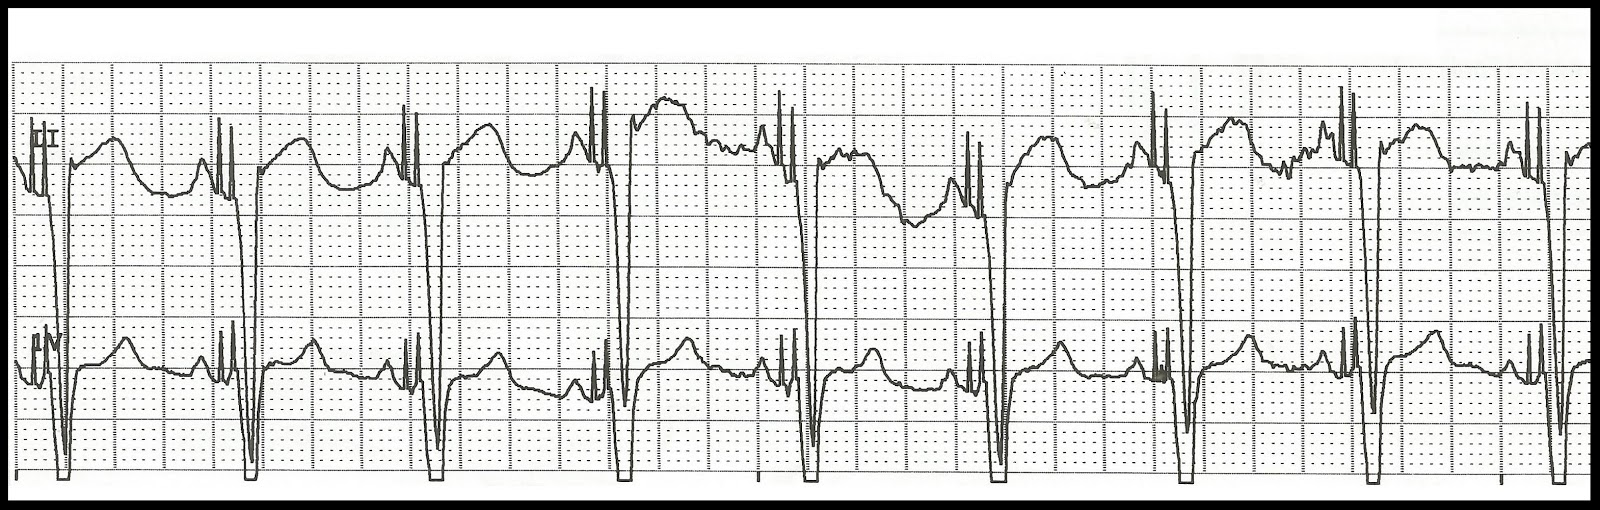 Float Nurse: EKG Rhythm Strip Quiz 144